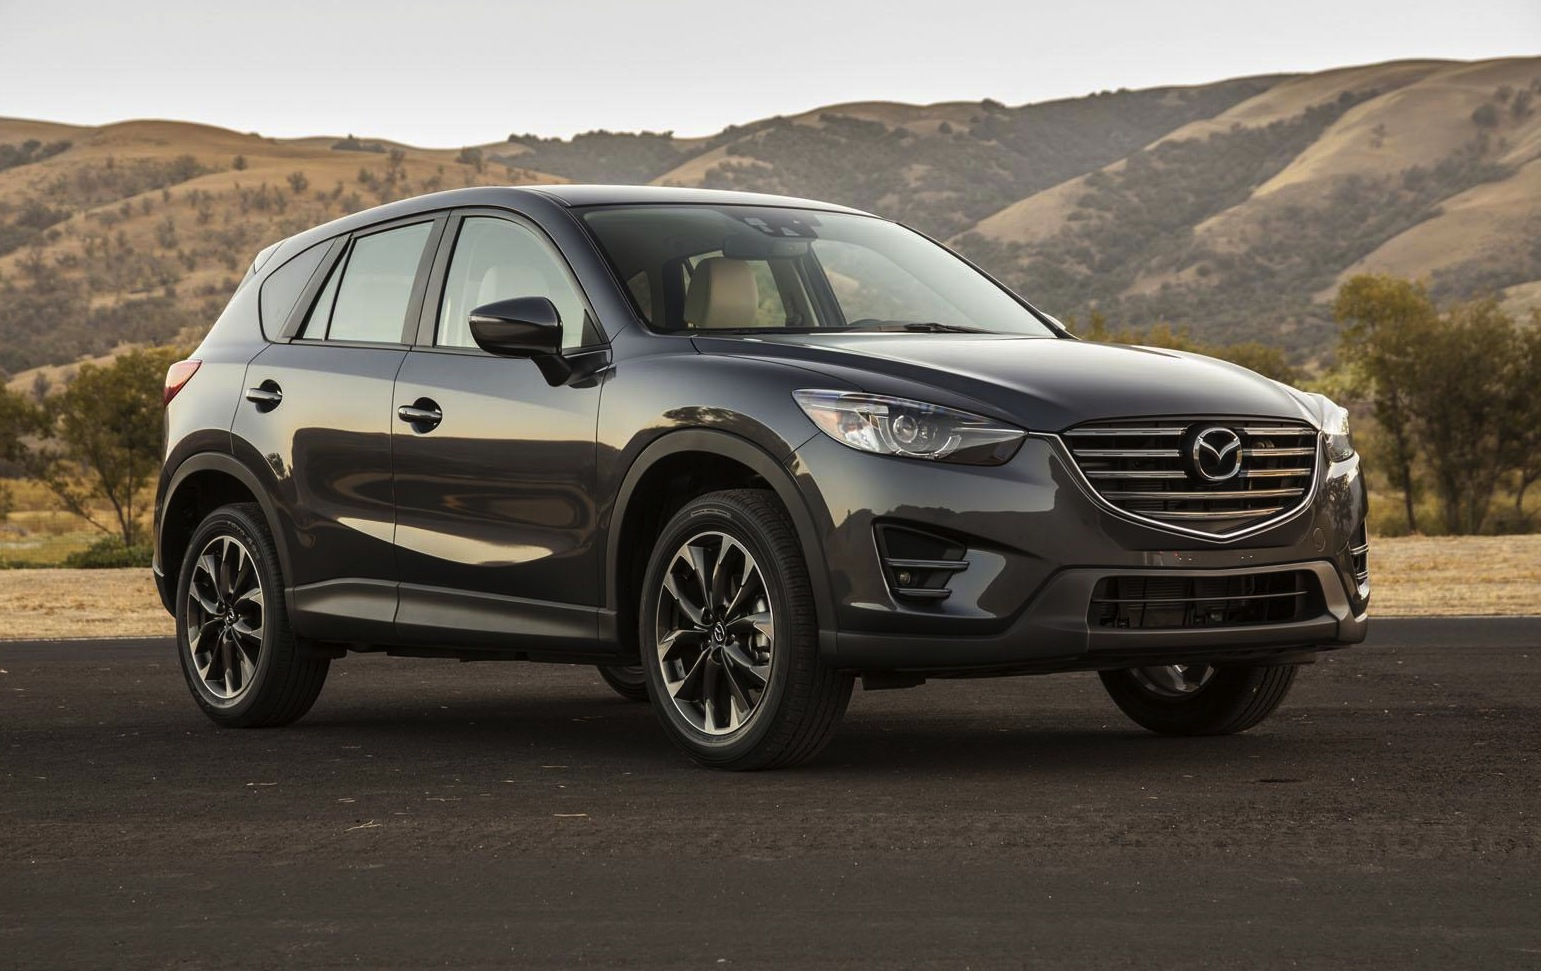 2015 mazda cx 5 revealed at la auto show performancedrive. Black Bedroom Furniture Sets. Home Design Ideas